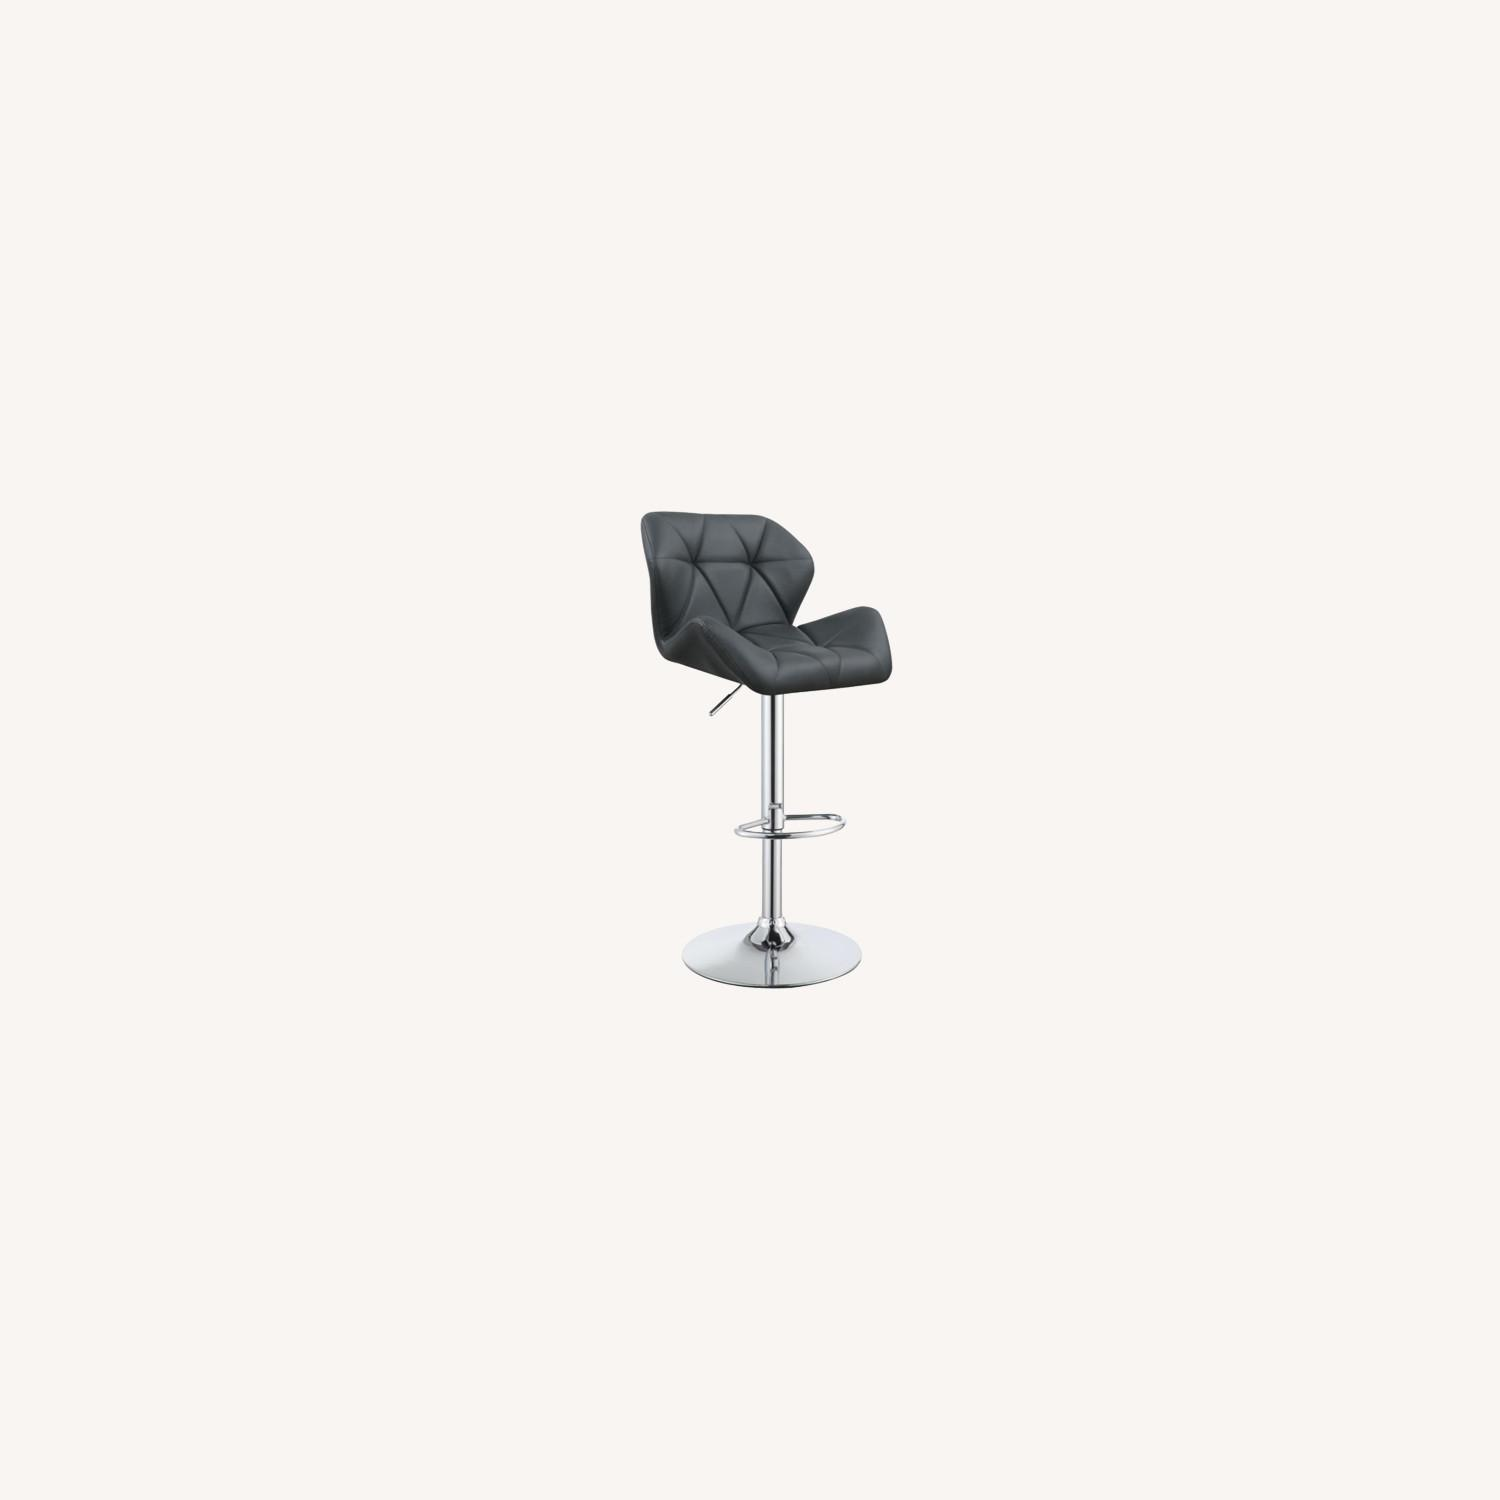 Adjustable In Grey Leather W/ Chrome Base - image-4